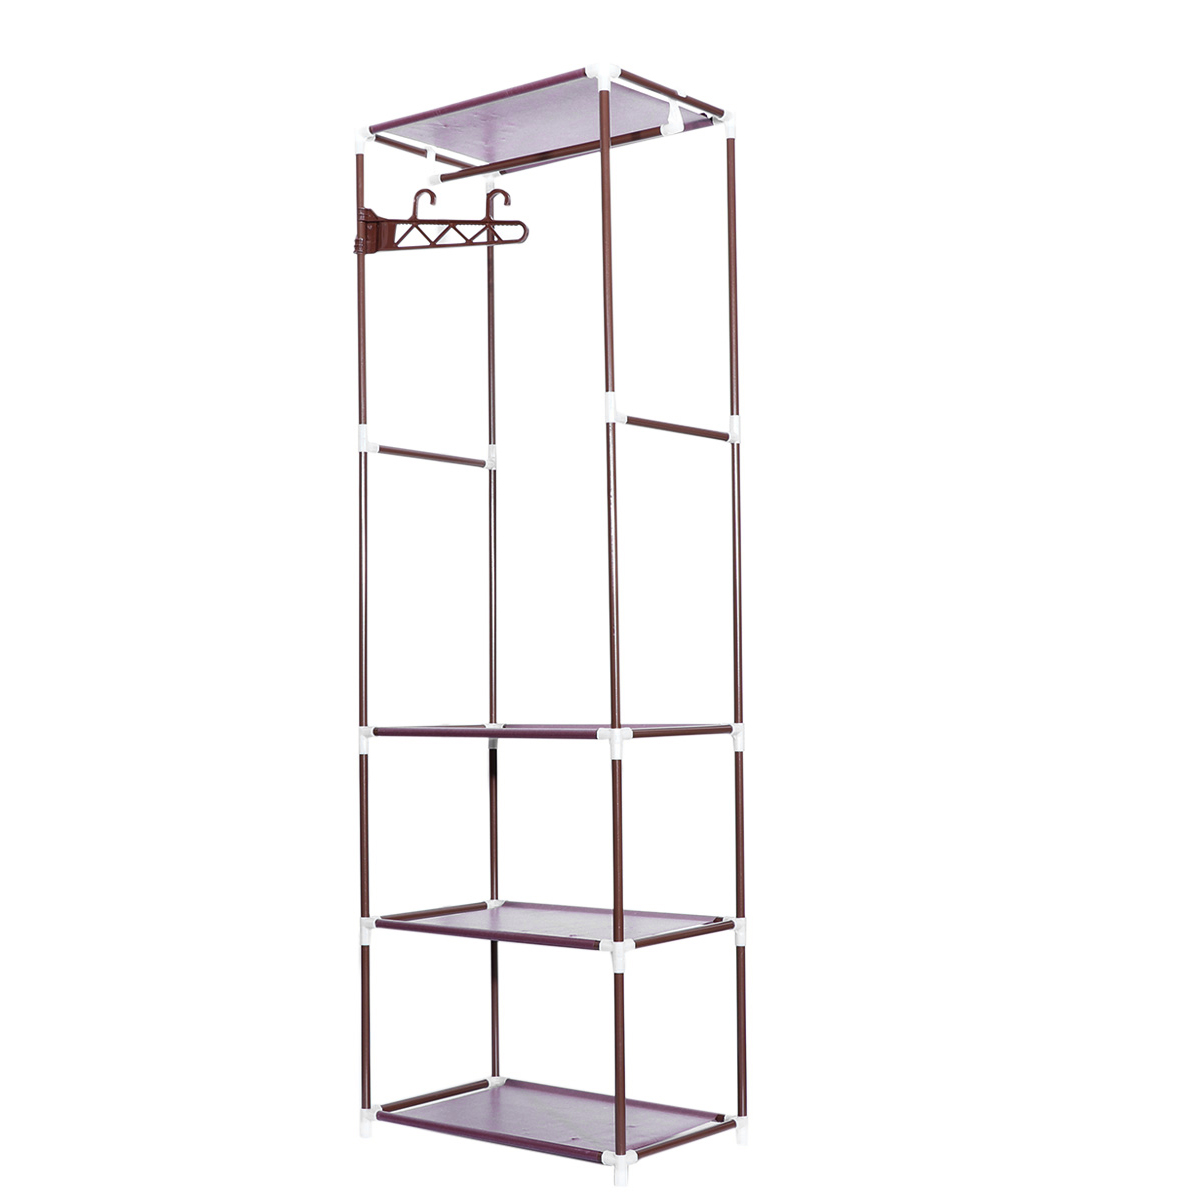 Bathroom Shelves 1pcs Portable Clothes Rack Organizer Bedroom Garment Floor-standing Shelf Clothing Coat Rack Storage Stand